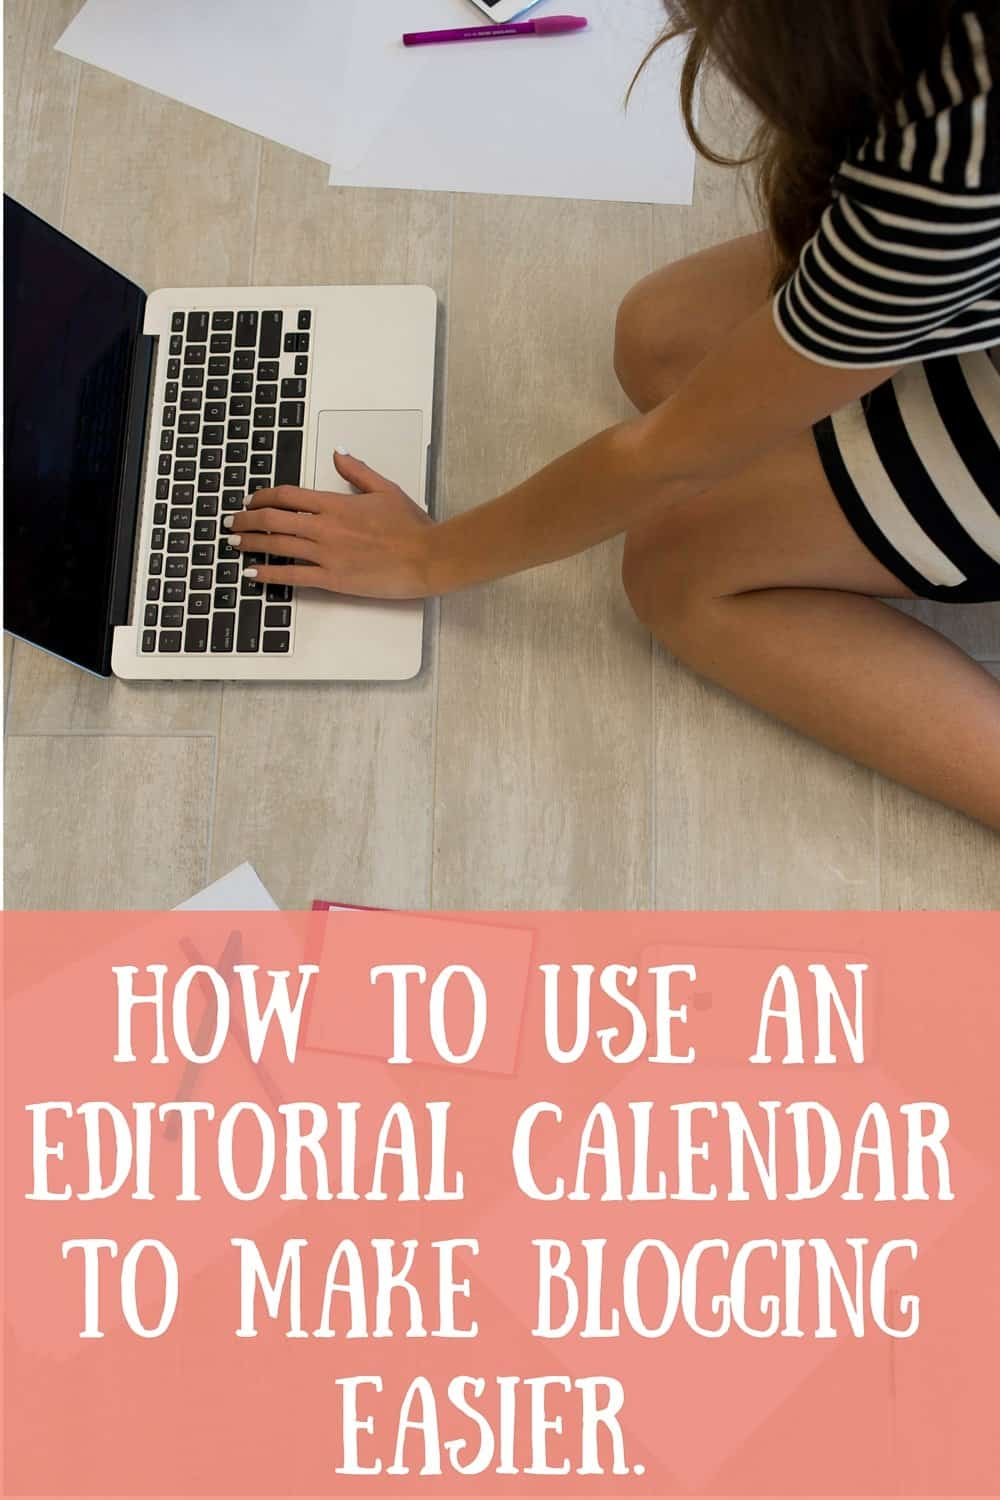 How to use an editorial calendar to make blogging easier.